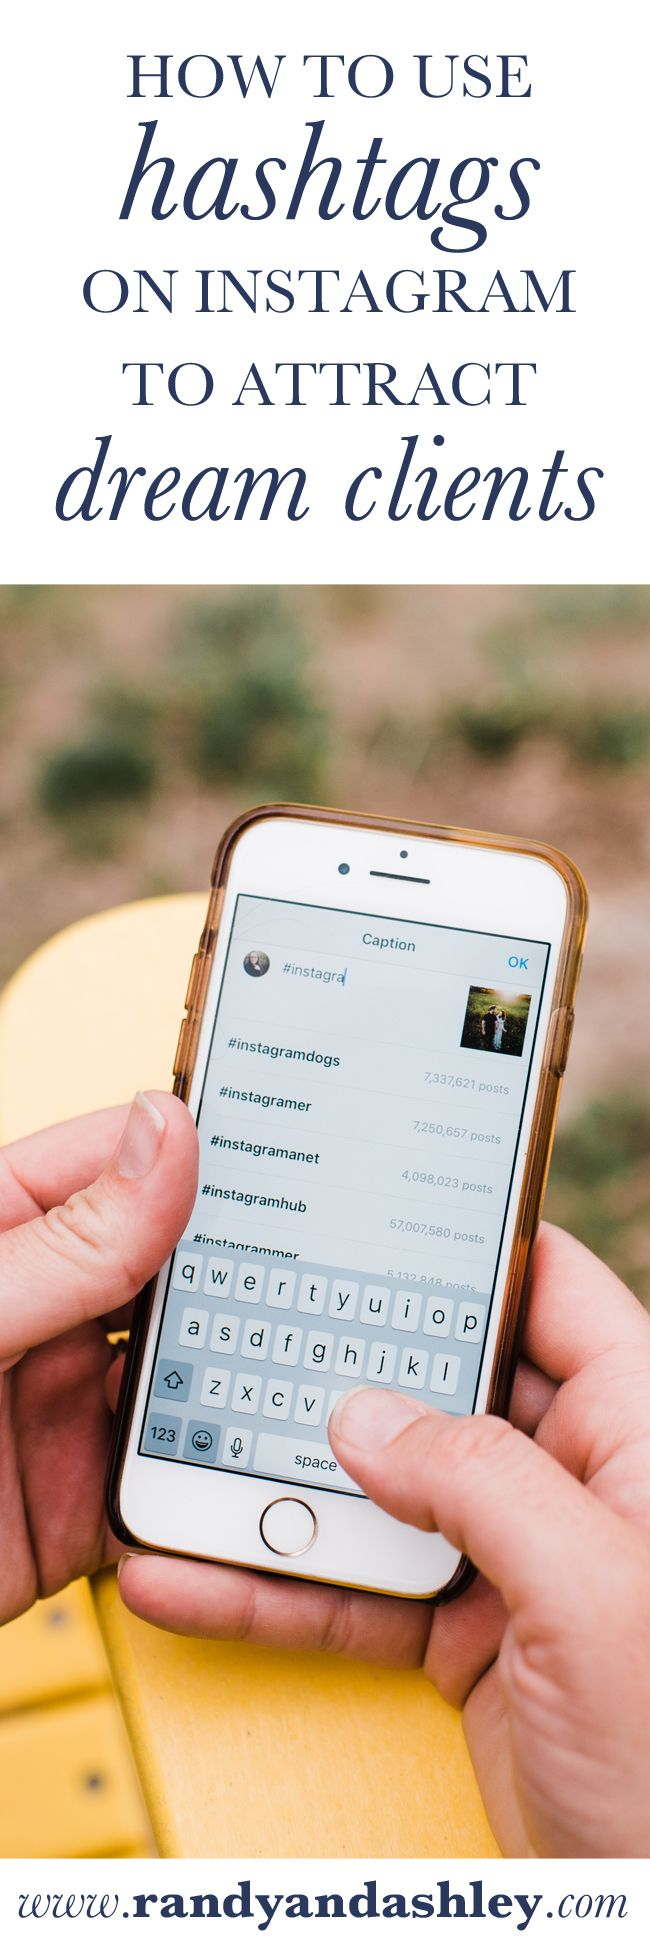 25 Best Ideas About Hashtags For Weddings On Pinterest Wedding Hashtags Inspiration Diy